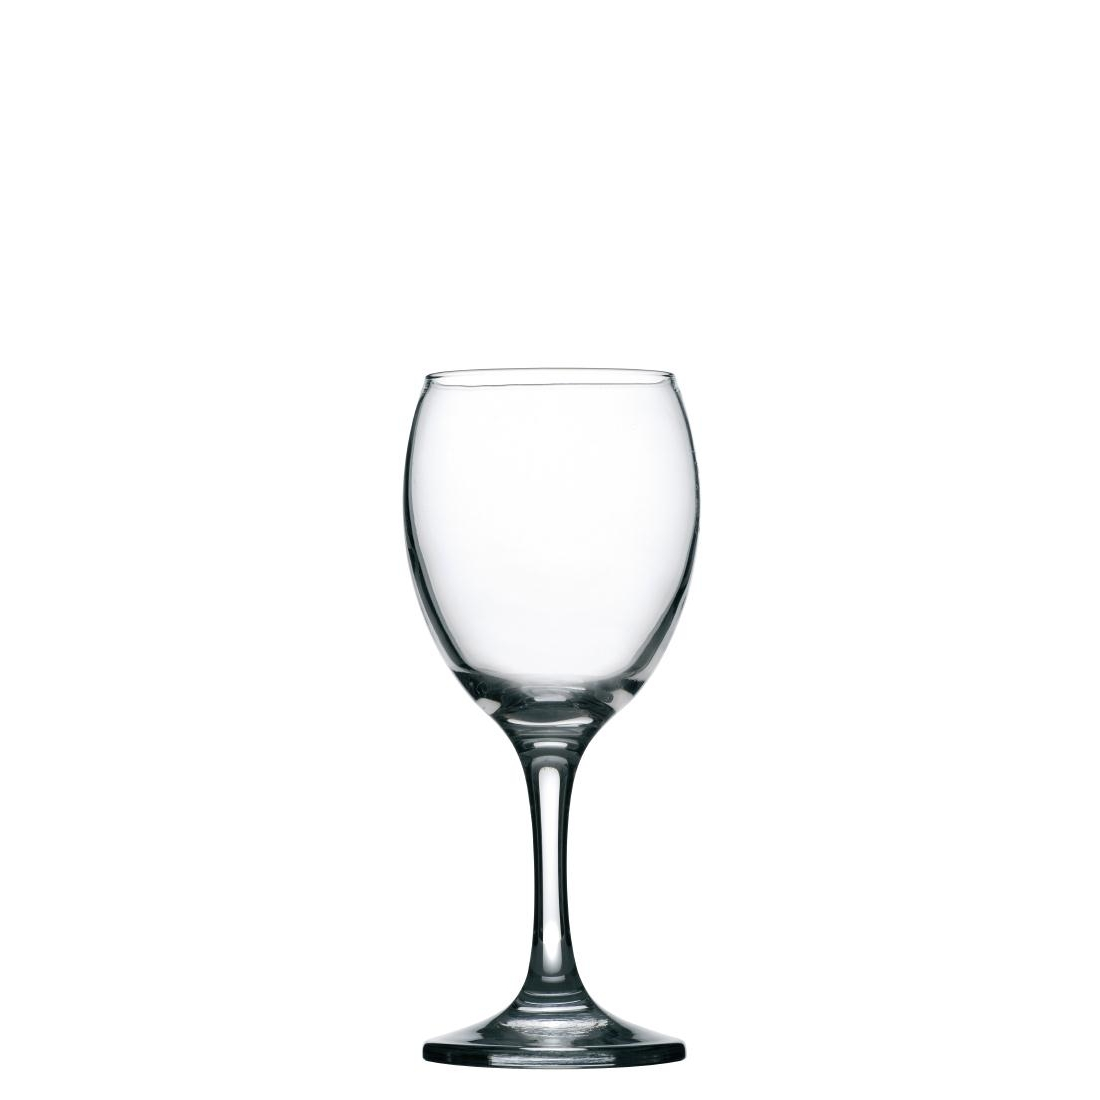 Utopia Imperial Wine Glasses 250ml CE Marked at 175ml